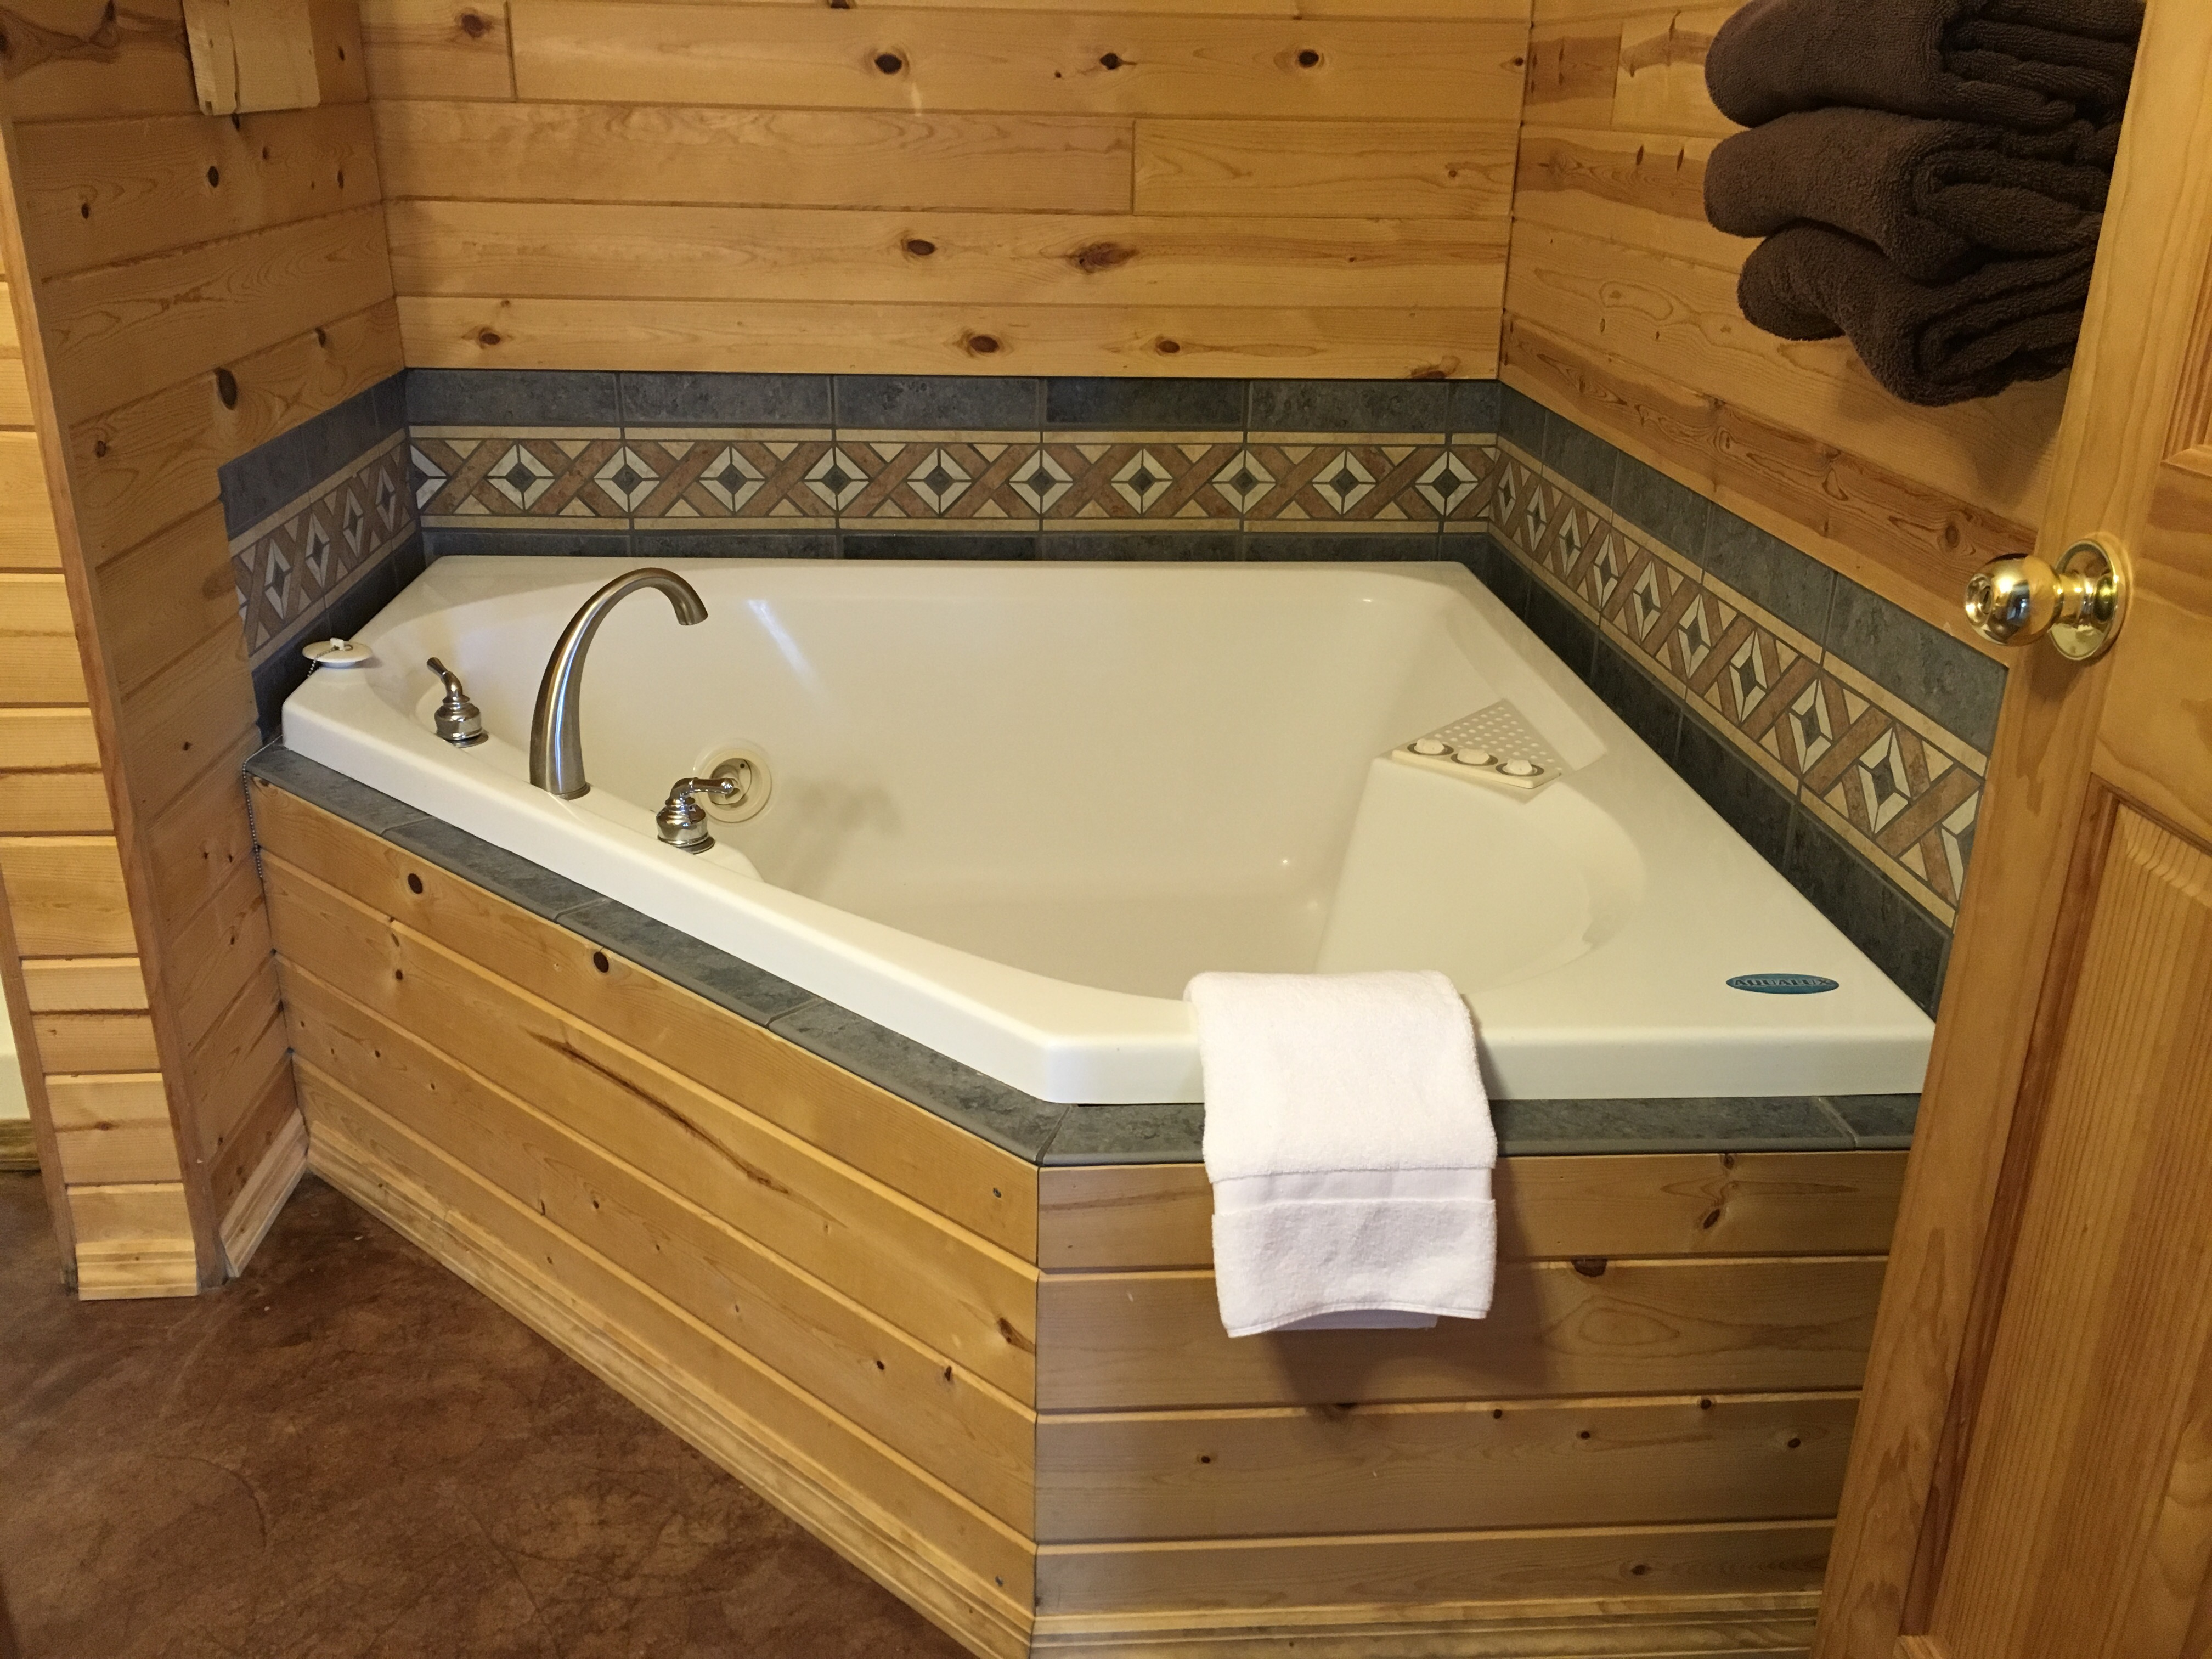 bathtub lowes double combo tub soaking two person by bathtubs side jacuzzi shower for